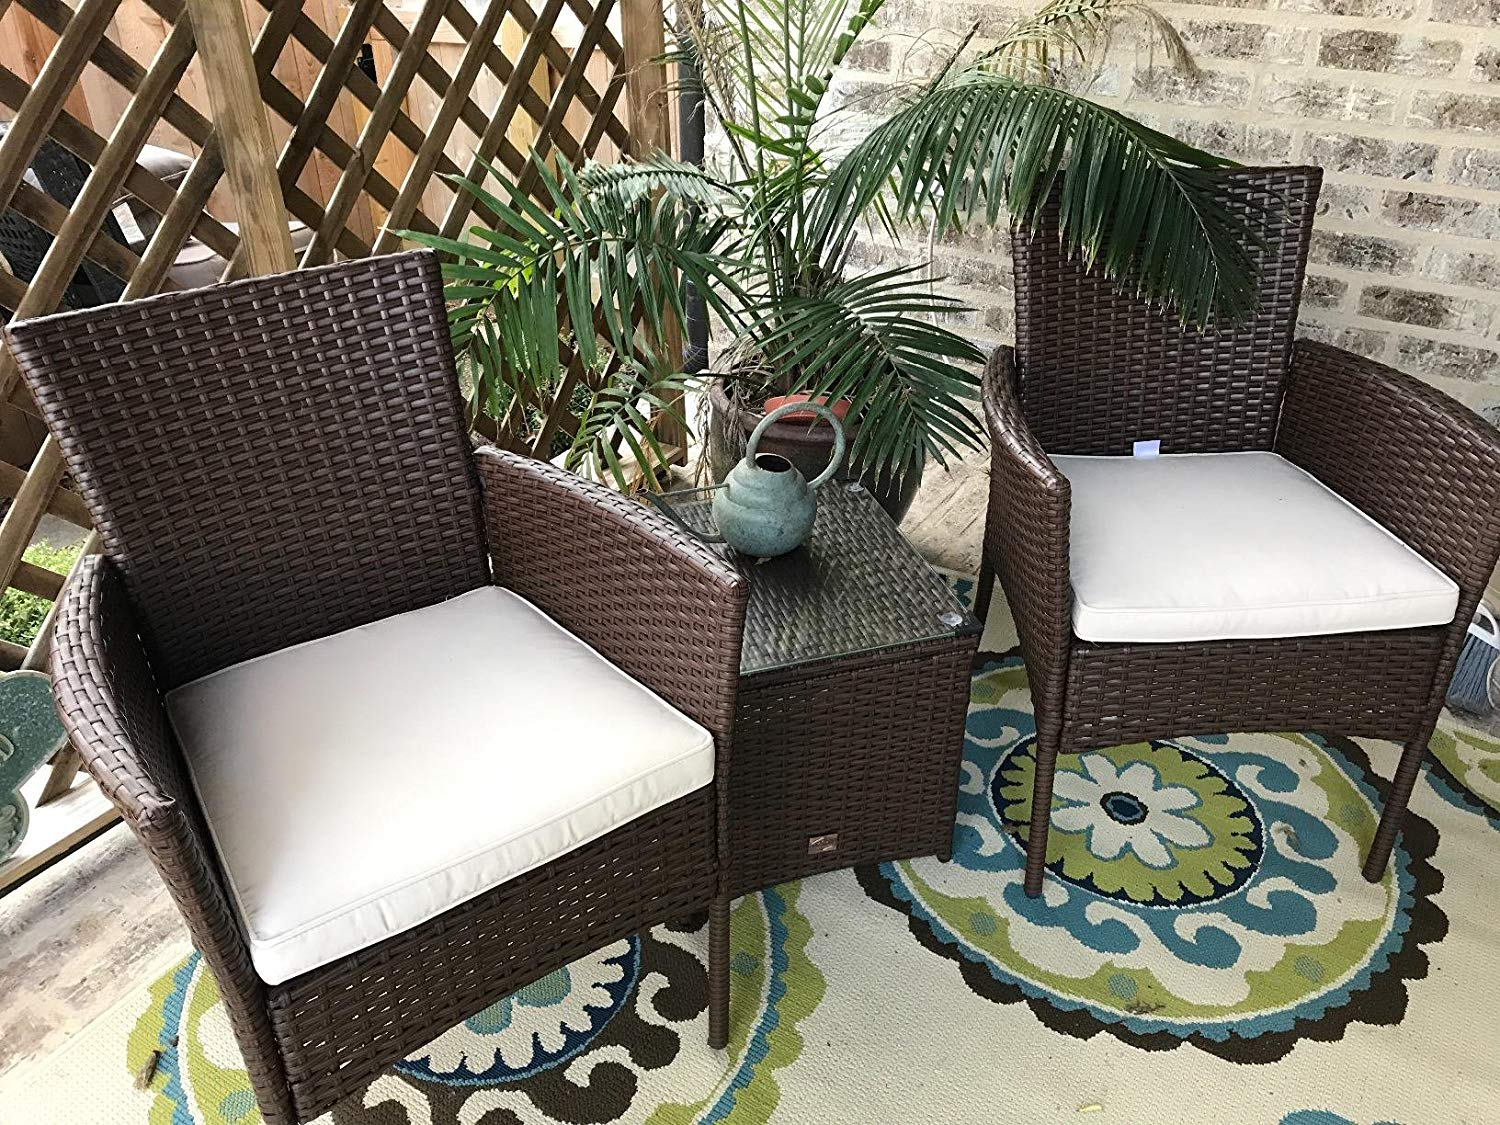 Cloud Mountain Patio Furniture 3 Piece Wicker Rattan Outdoor Bistro Set BrownKhaki Patio Table and Chair Set Comfortable Modern Easy Assembly Patio Lawn Garden Backyard Pool with Cushions